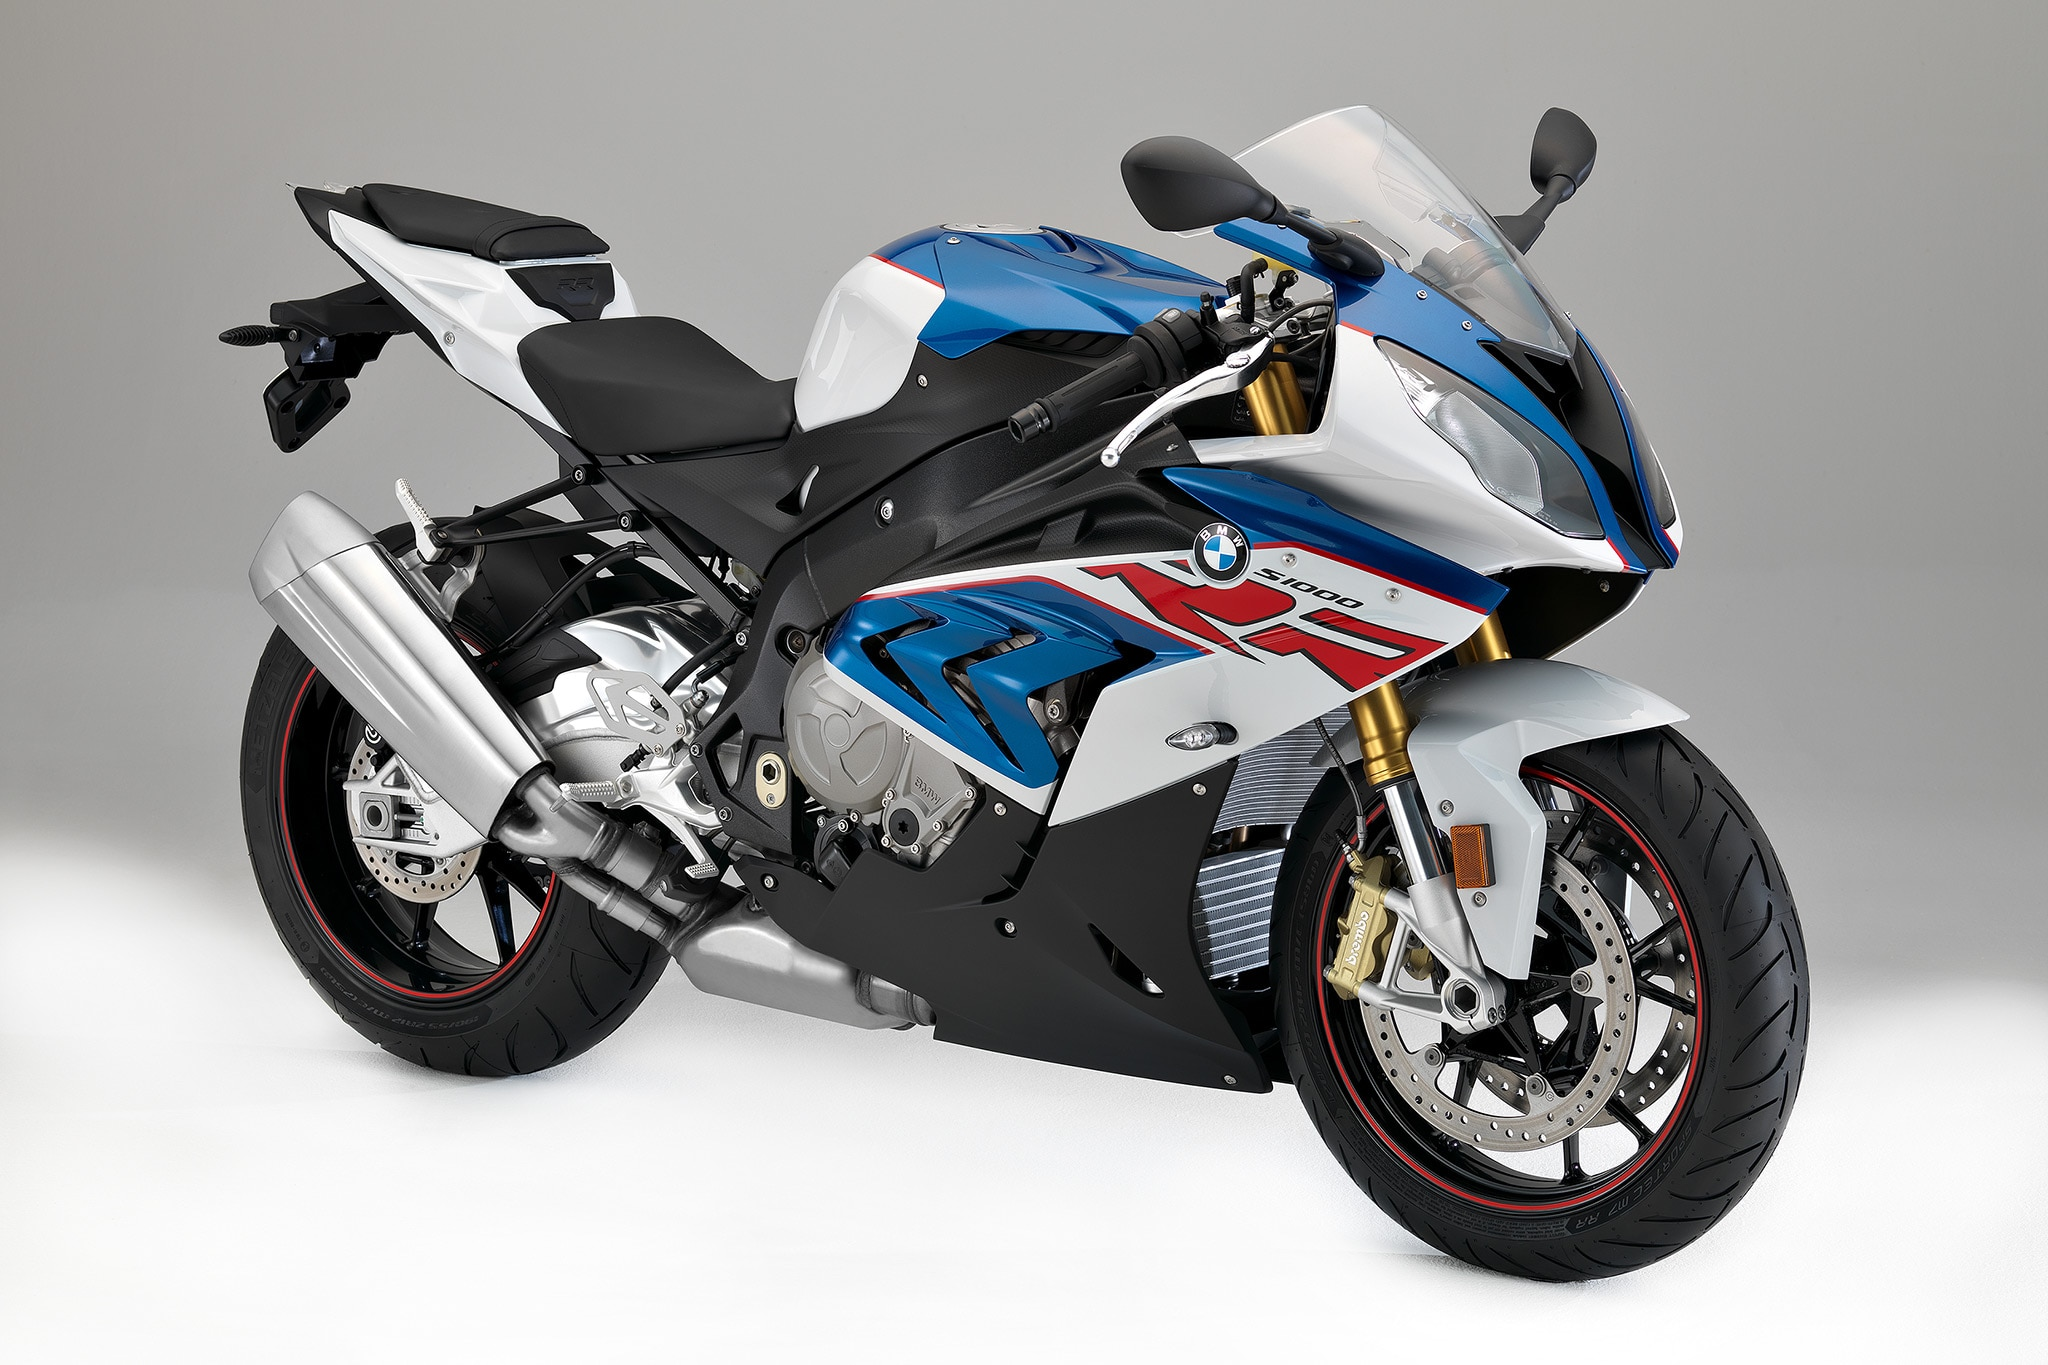 Bmw S1000rr For Sale >> 2016 BMW S1000RR First Ride Review | Automobile Magazine